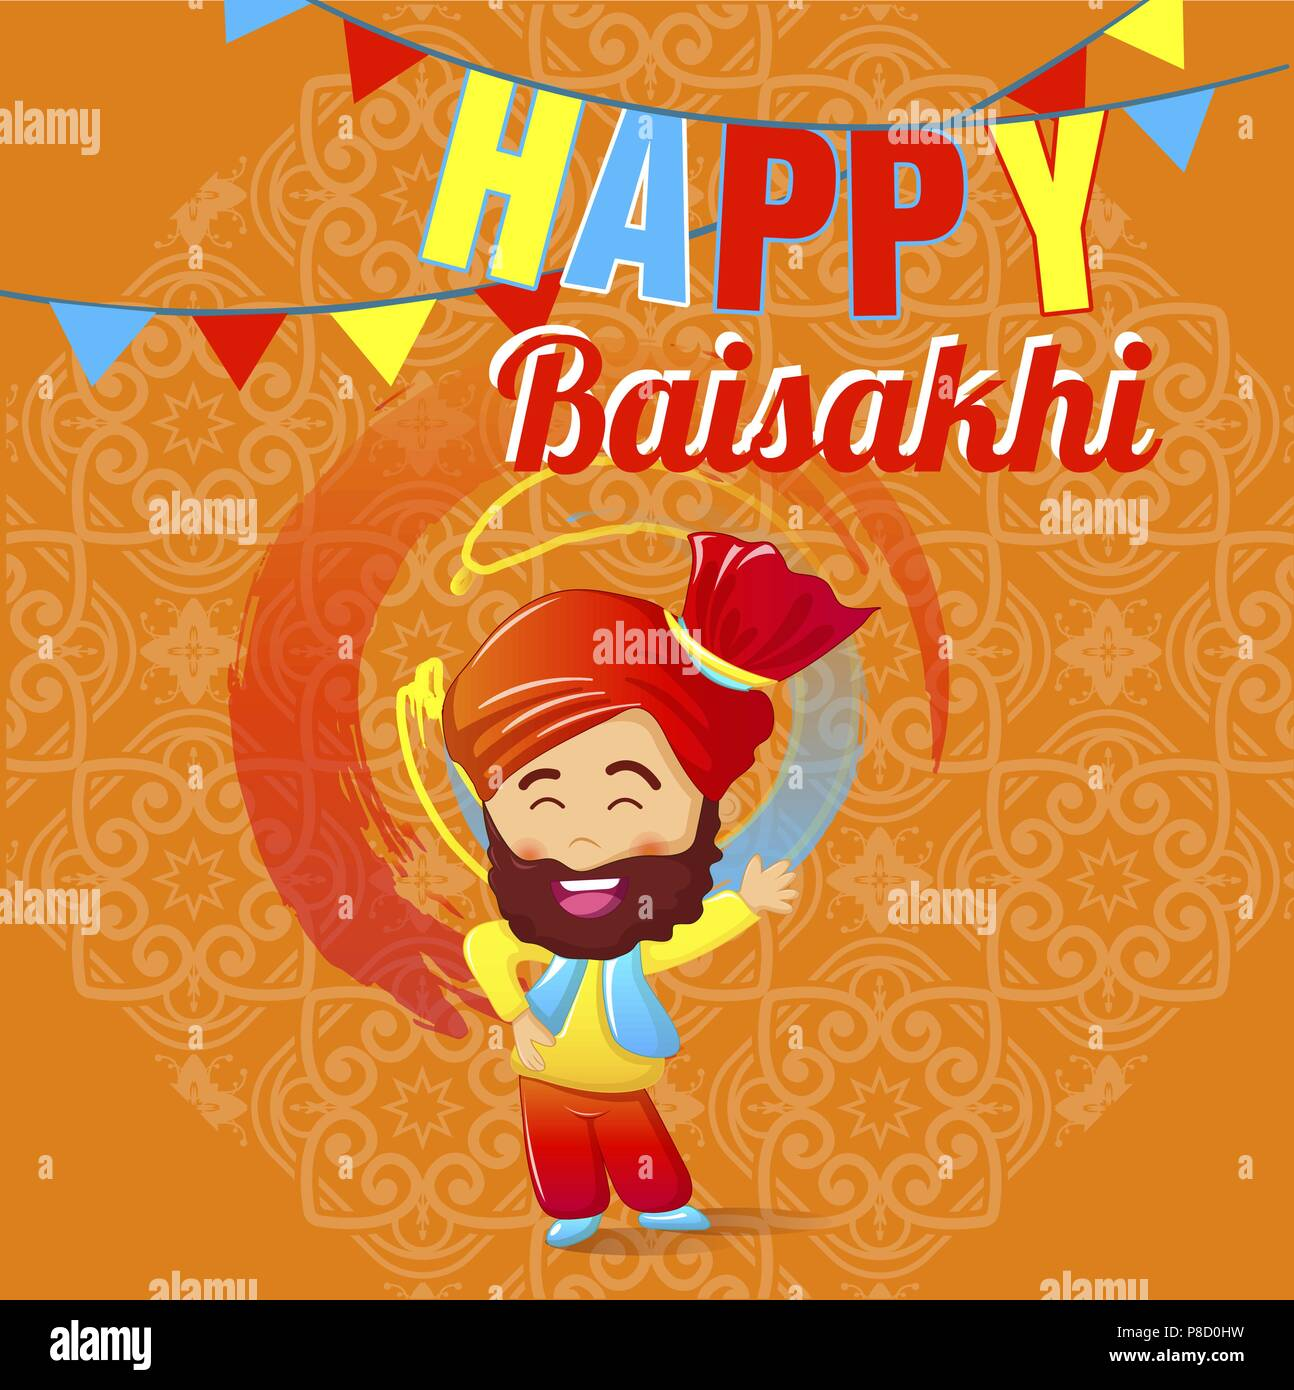 Happy baisakhi man concept banner, cartoon style - Stock Vector